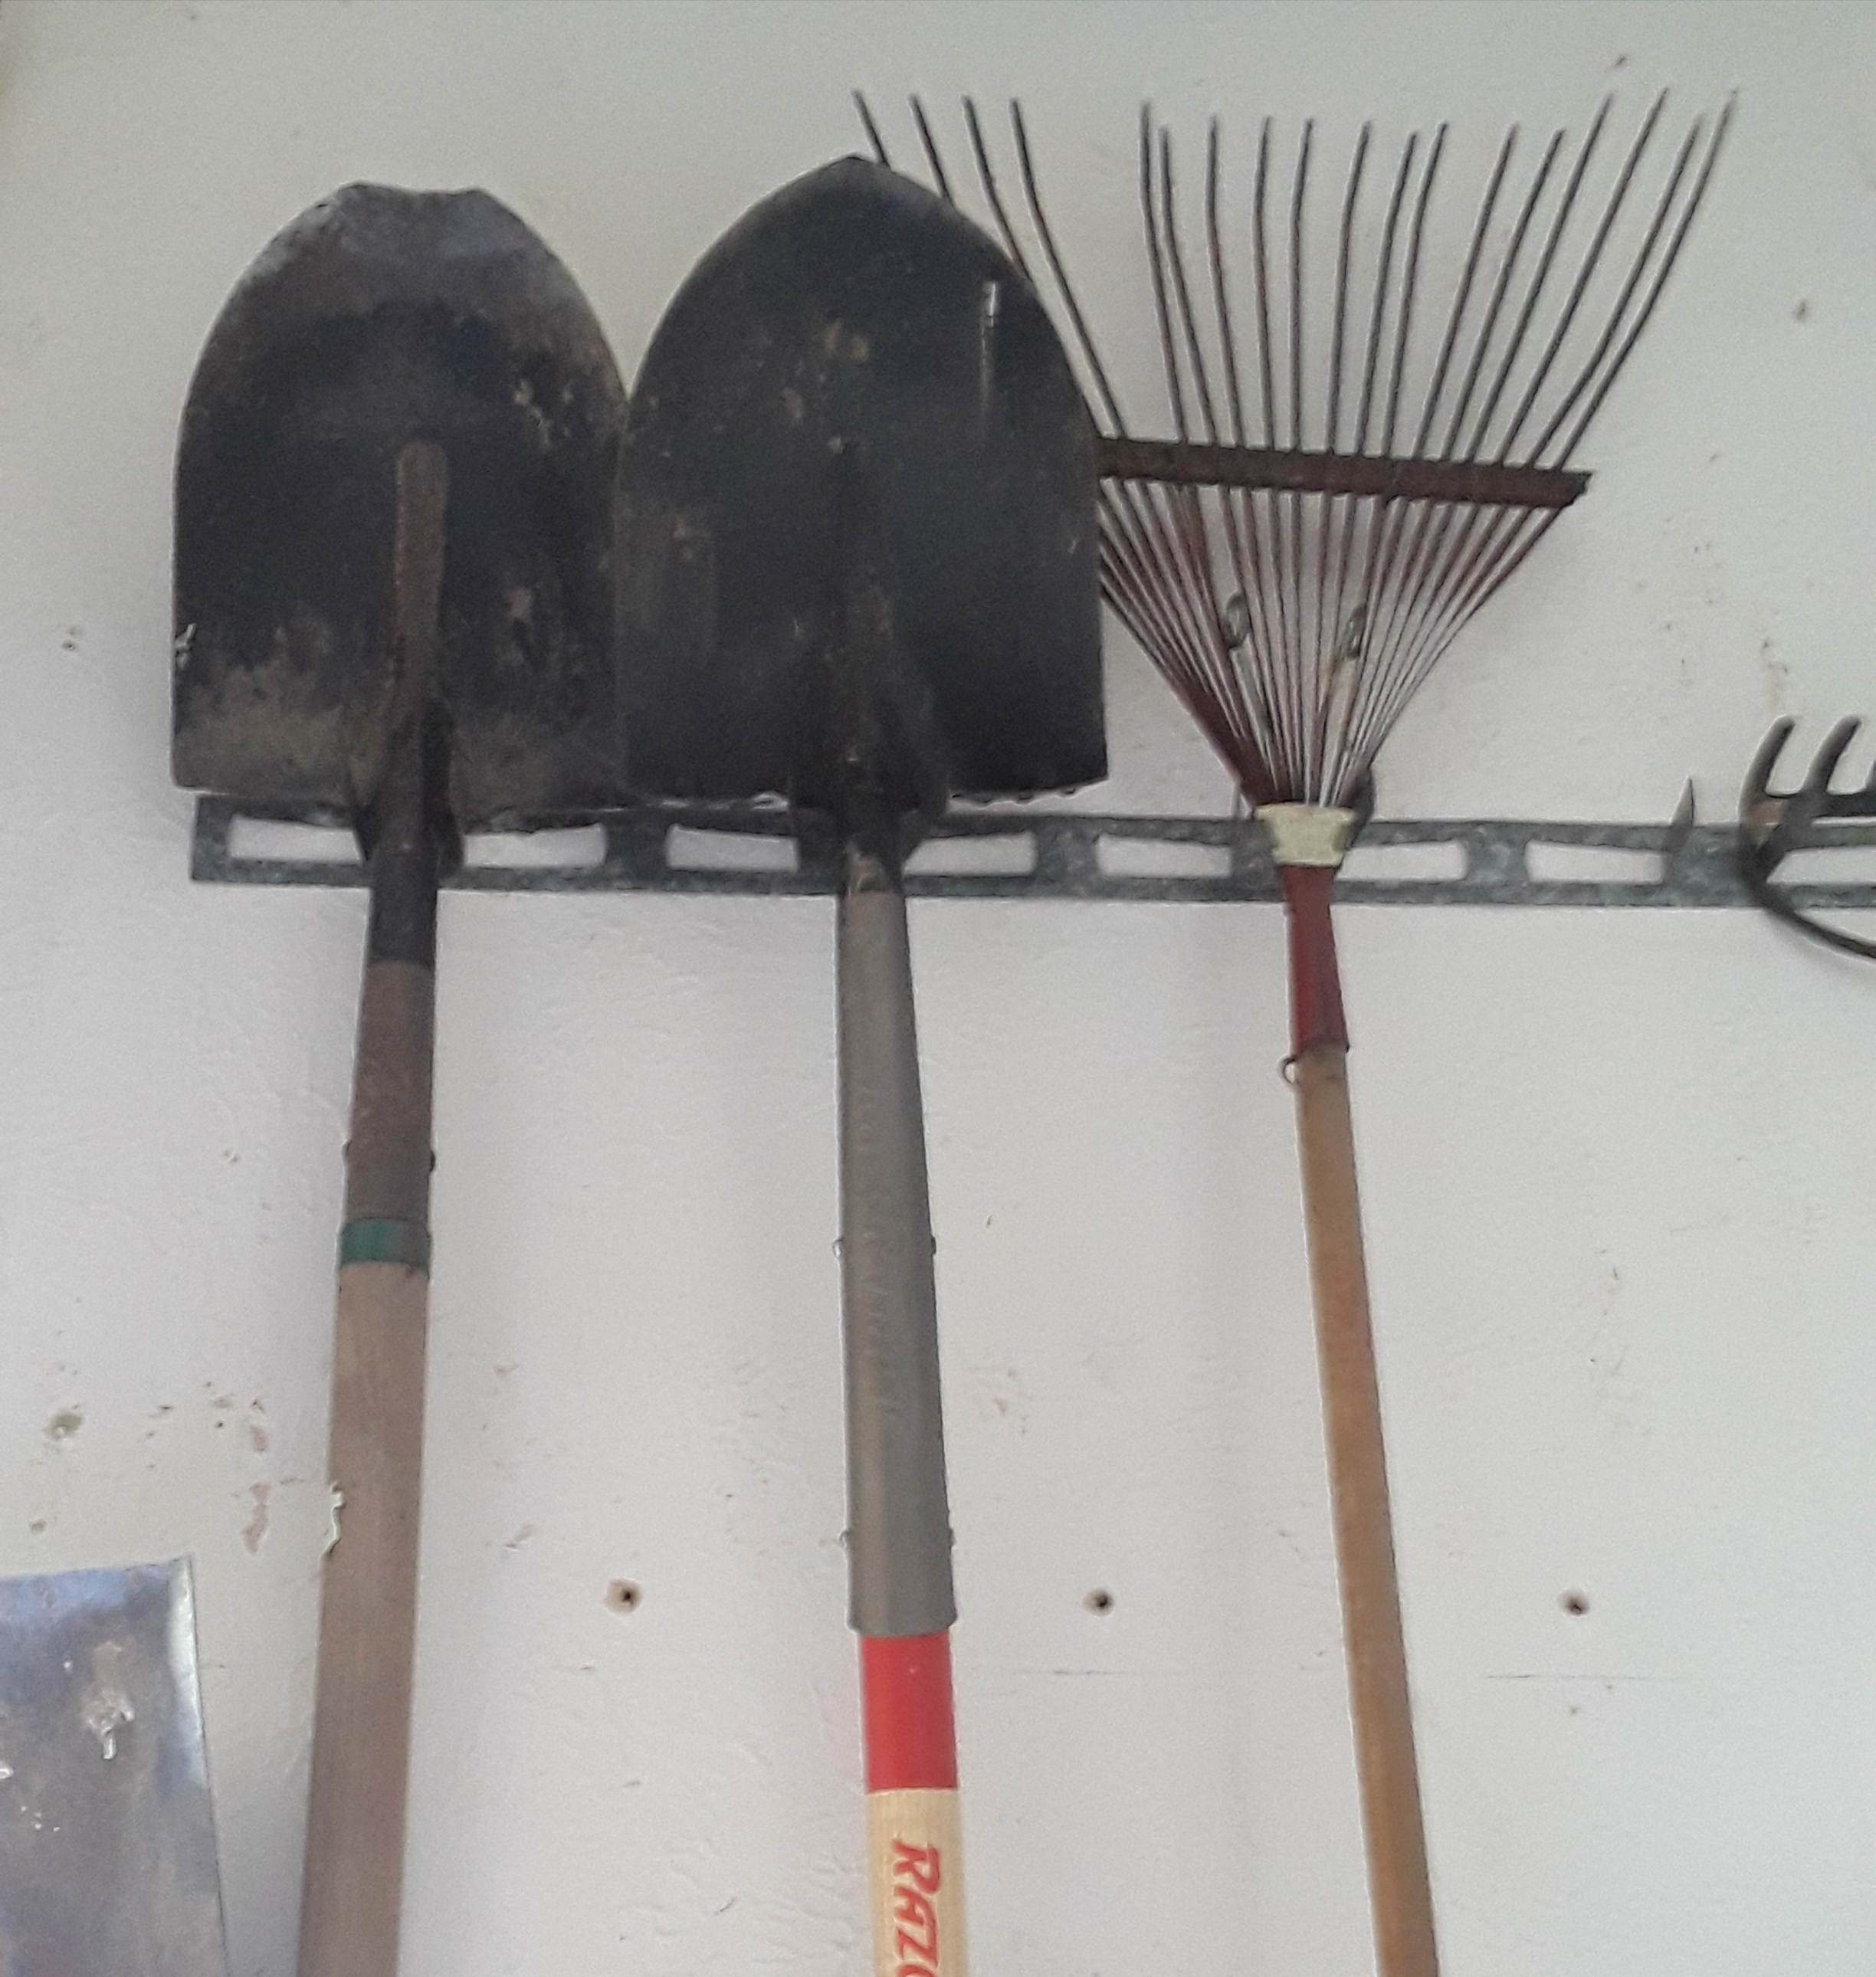 a rake and two shovels are hanging in the garage